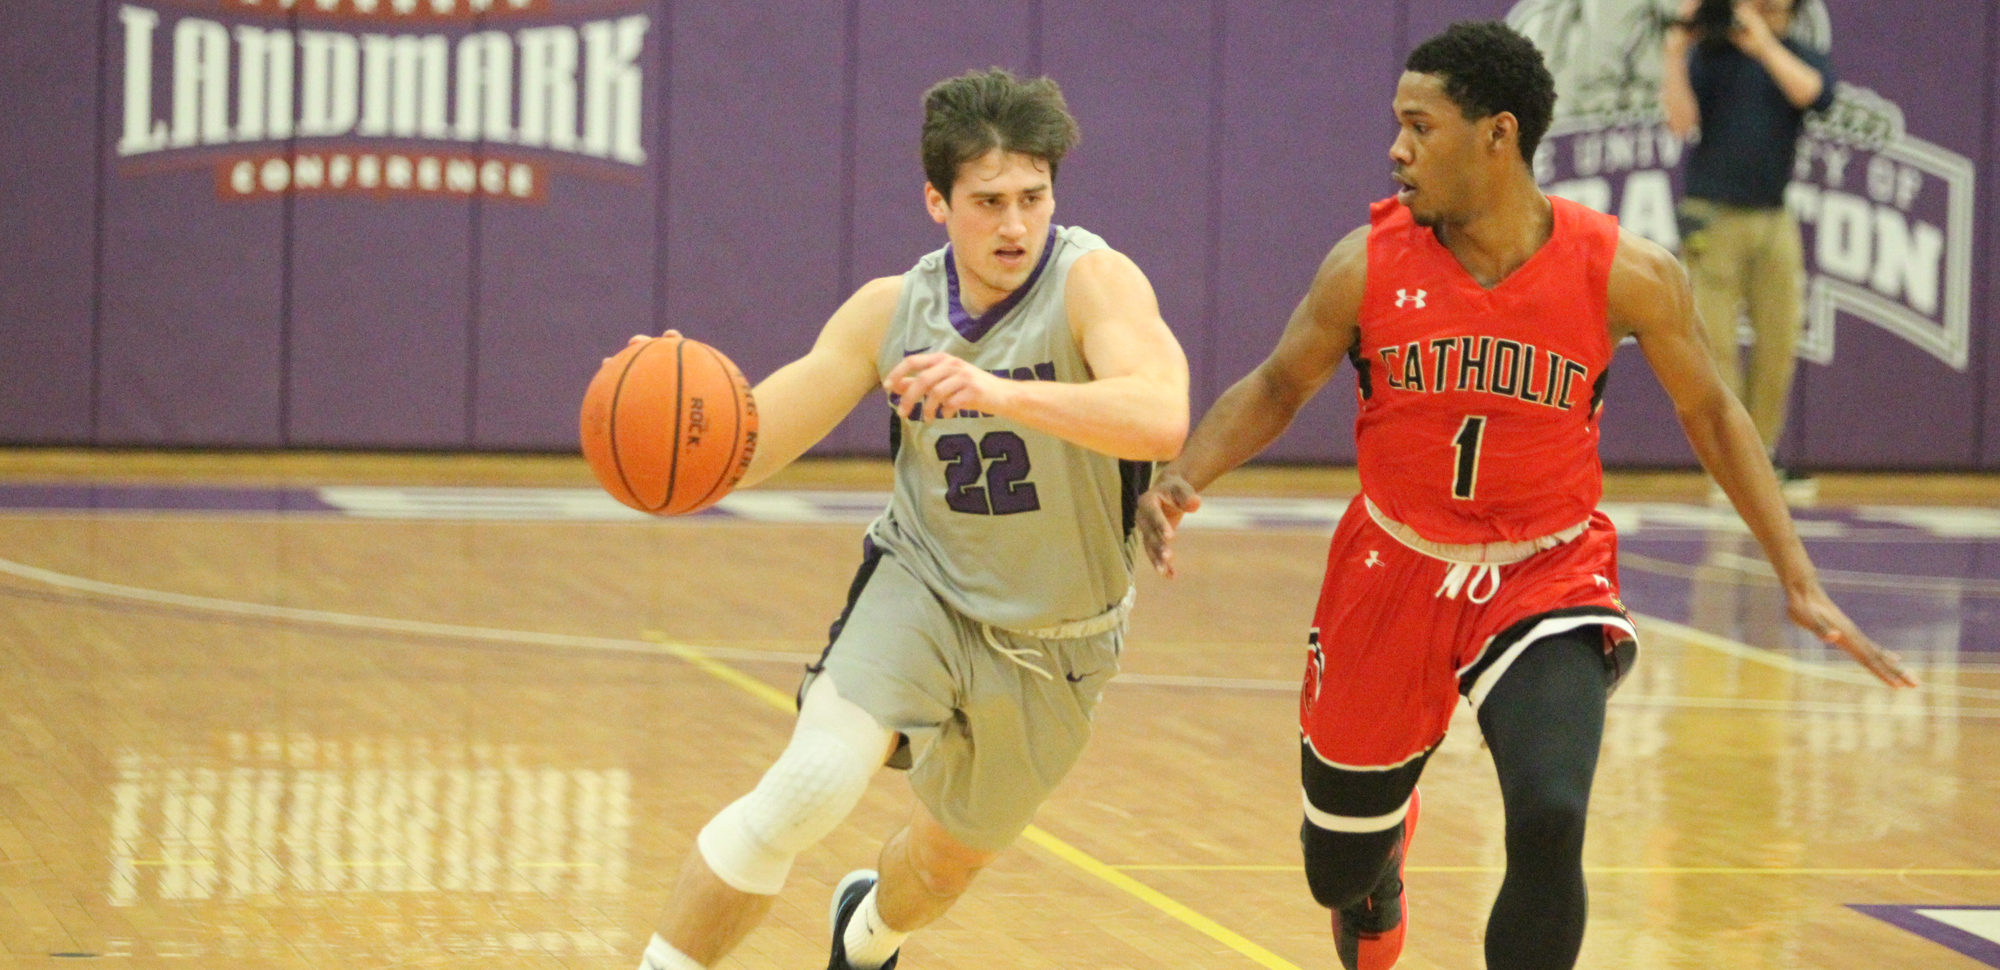 Bailey, DeVerna Power Men's Basketball Past Catholic, 71-63